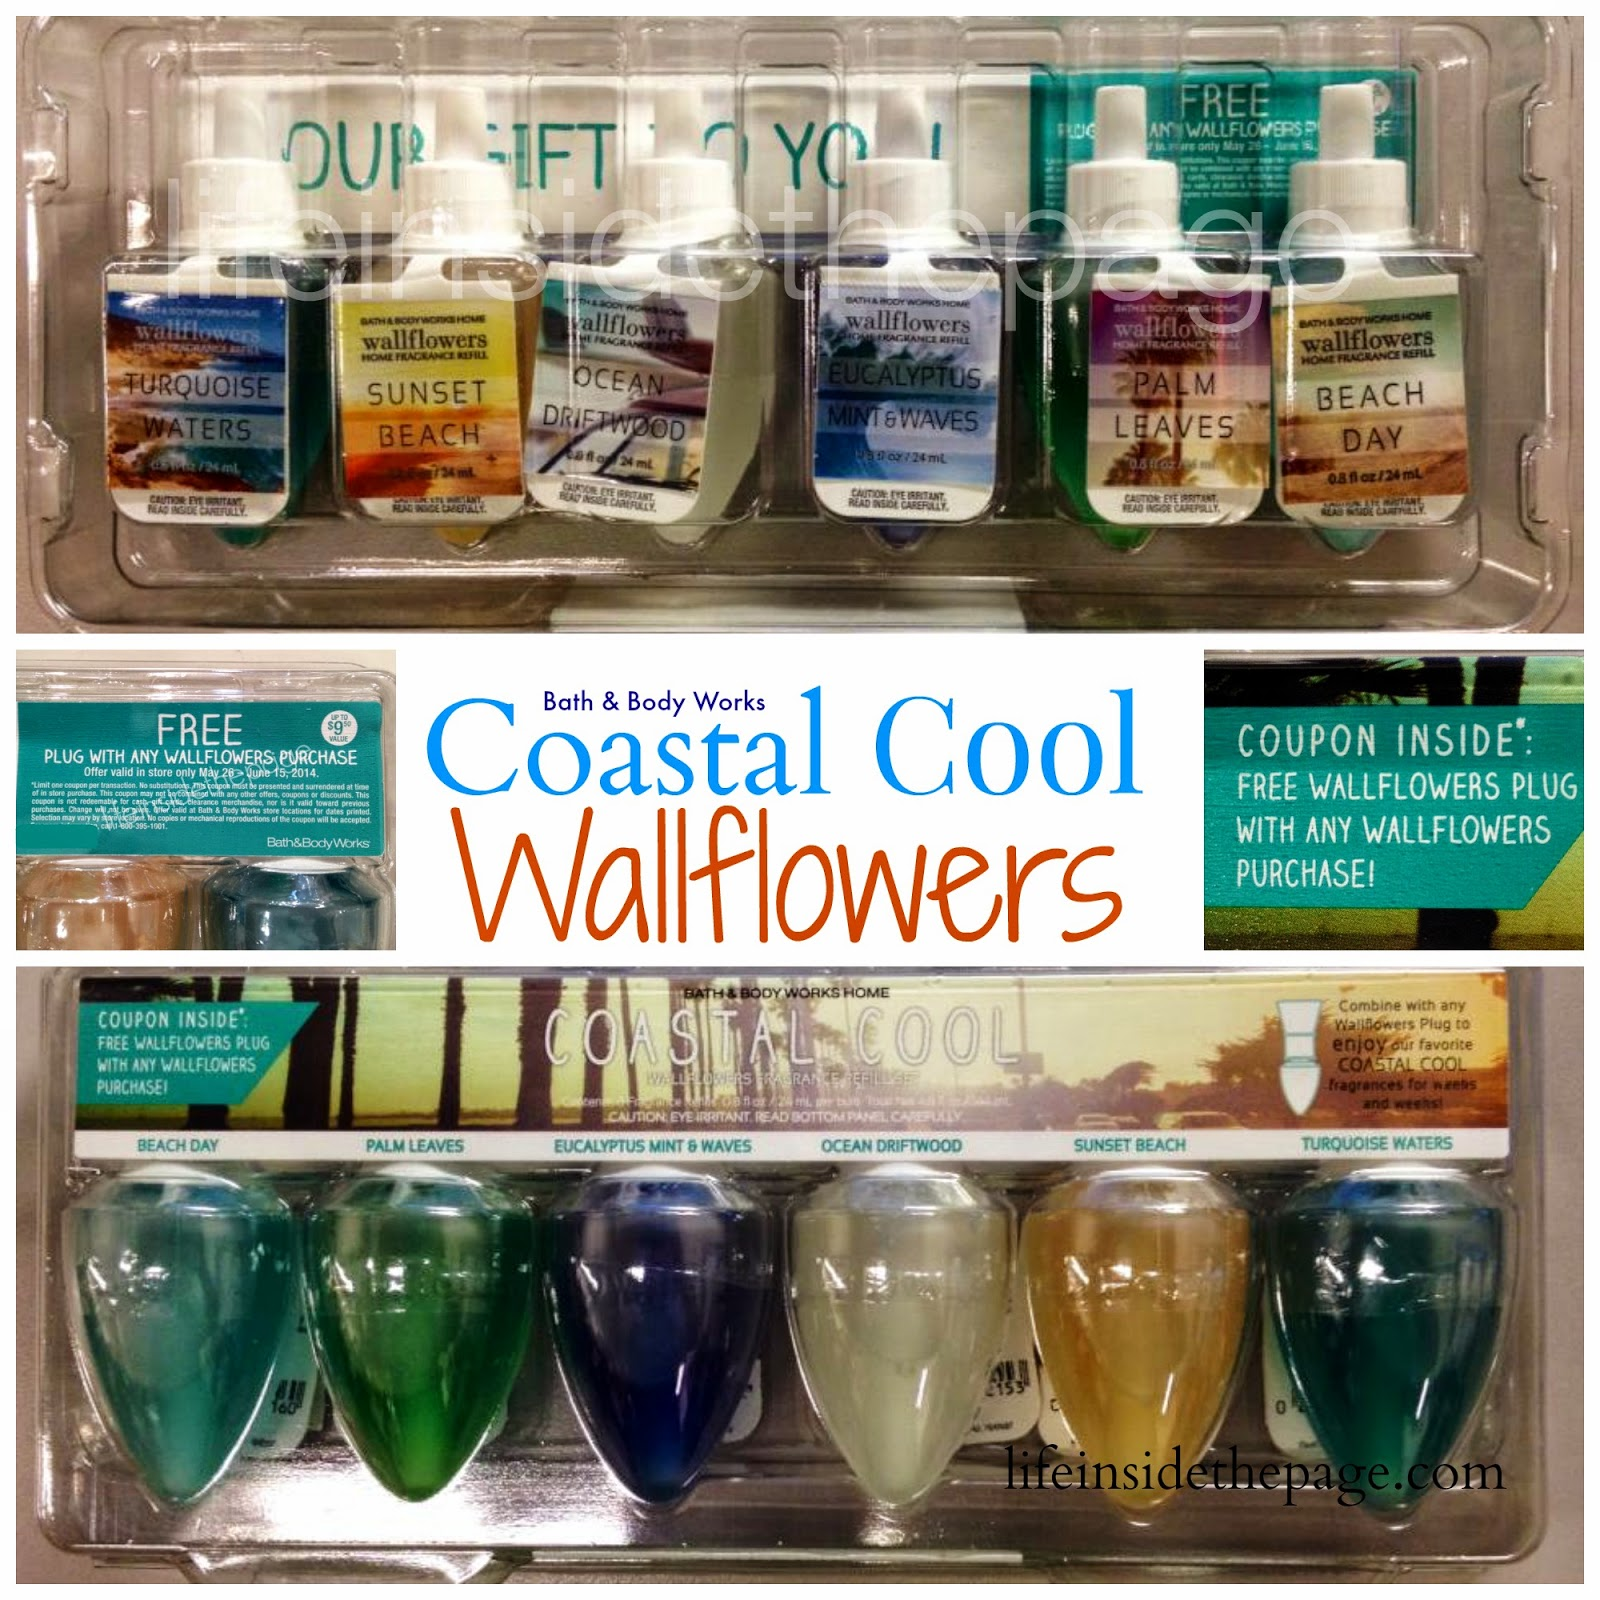 Bath & Body Works | Coastal Cool Wallflower | 6 pack with free wallflower unit coupon inside